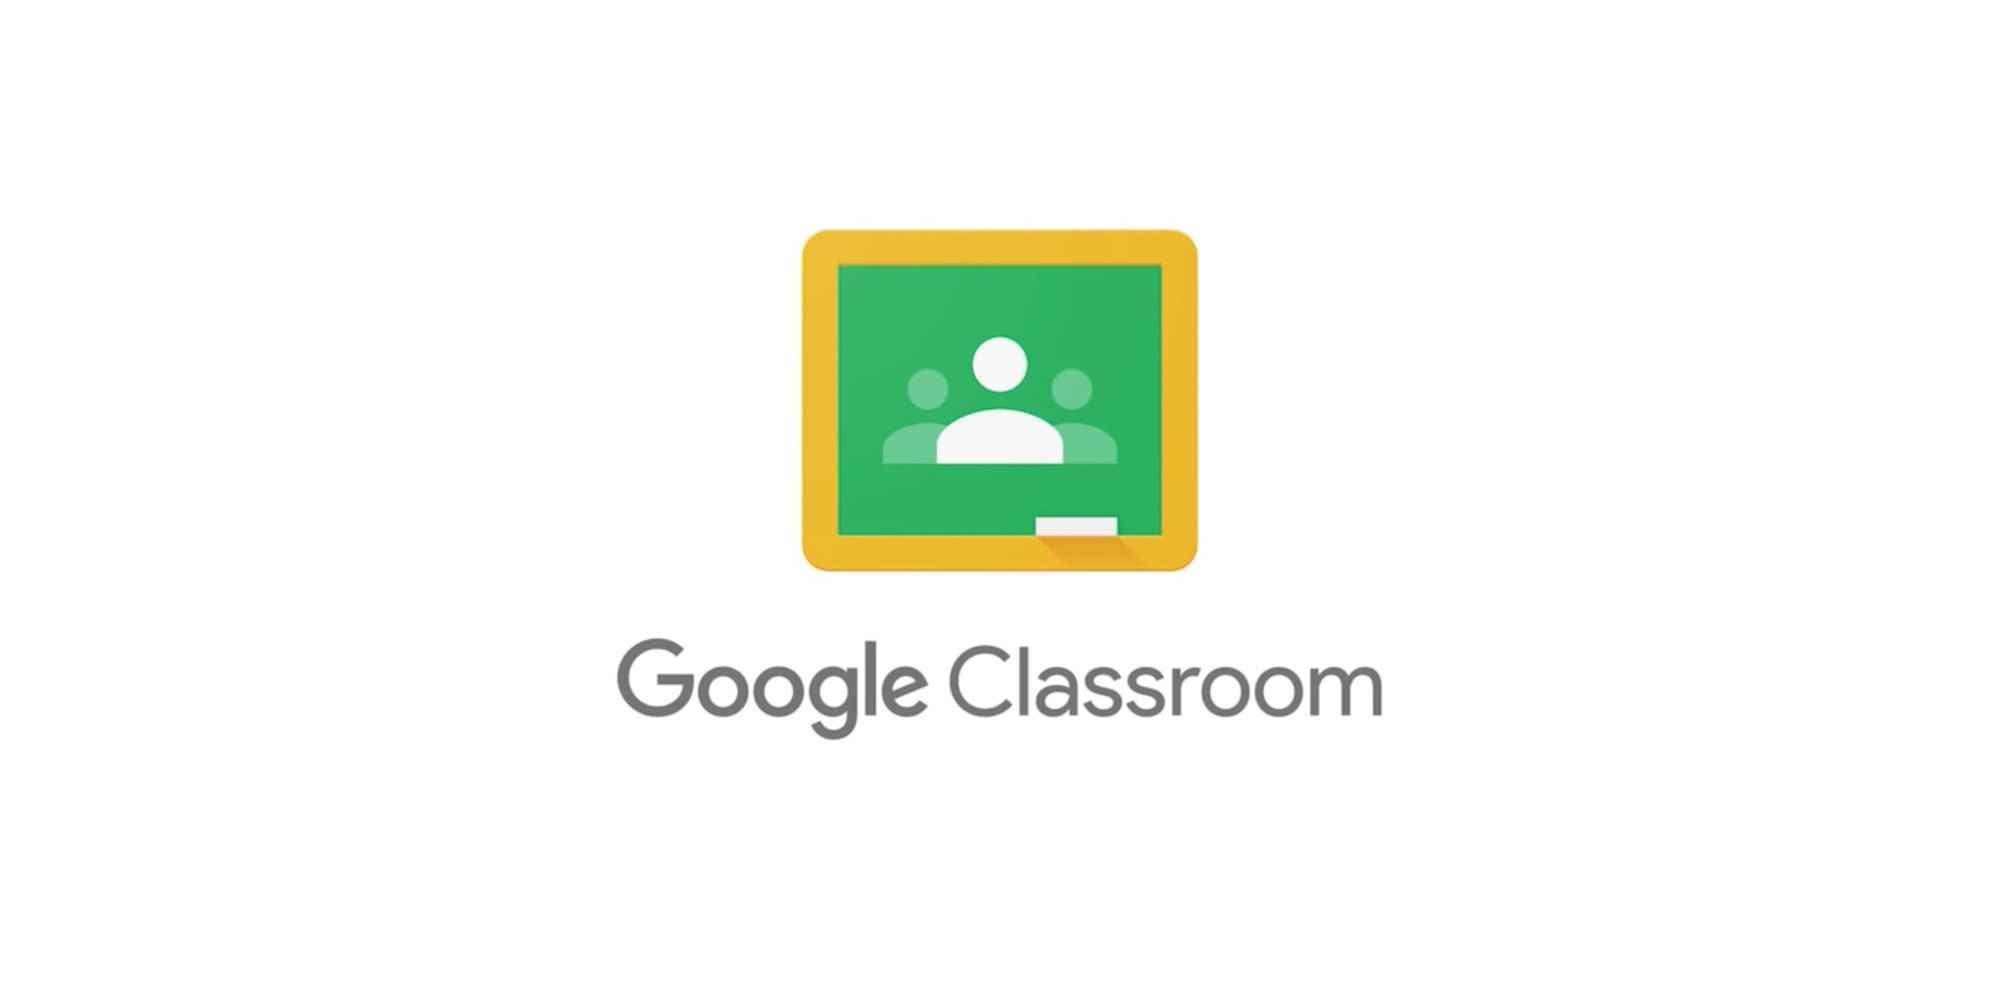 Google Classroom grows amid coronavirus in new regions - 9to5Google